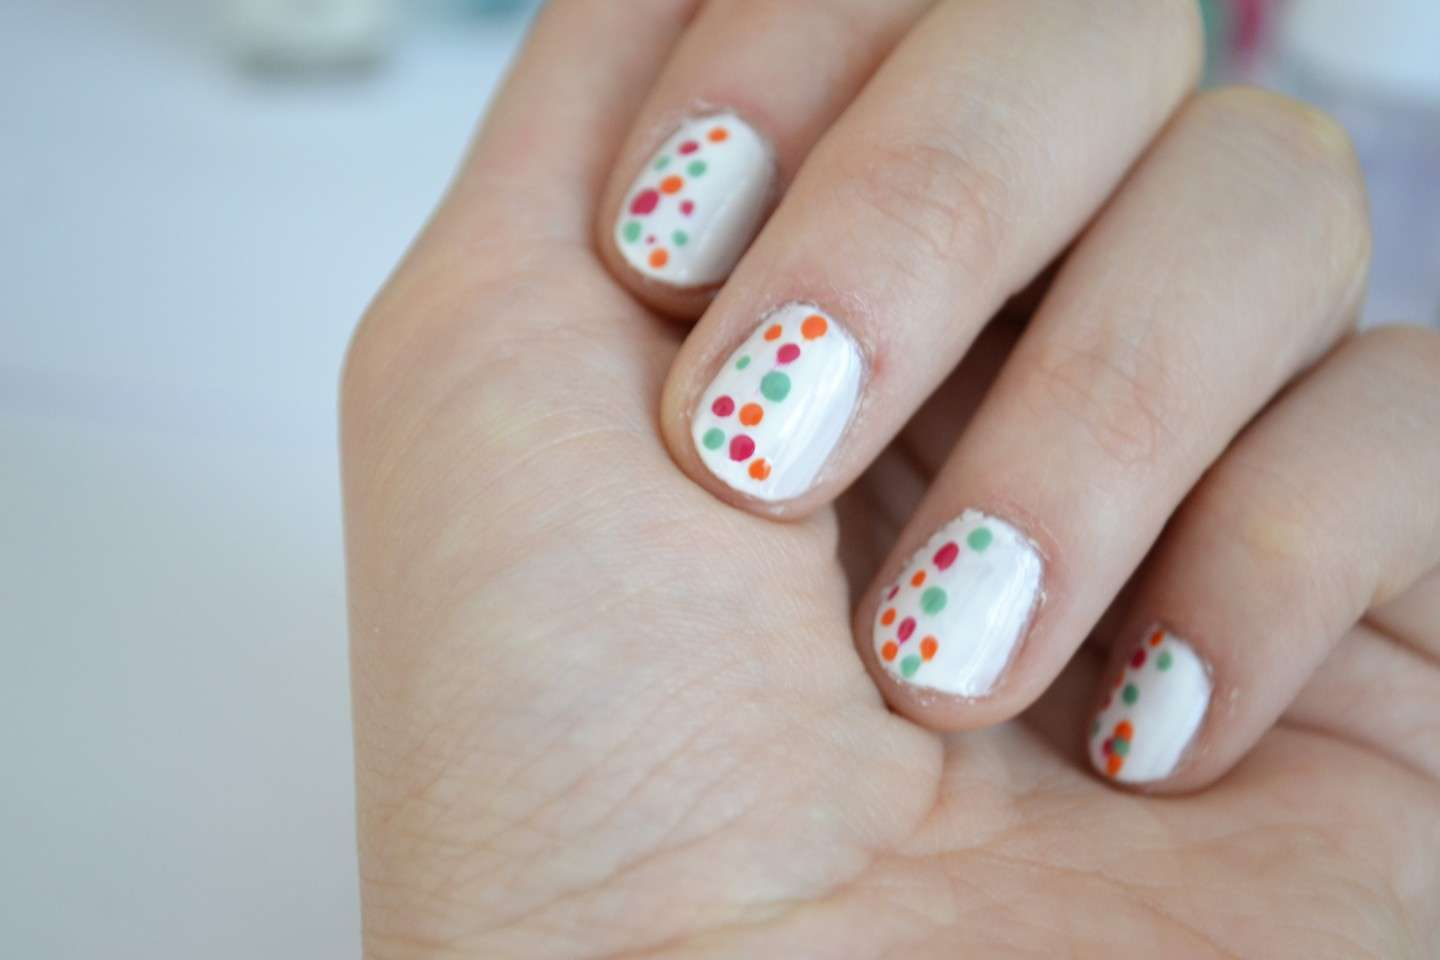 Nail art bianca con pois colorati